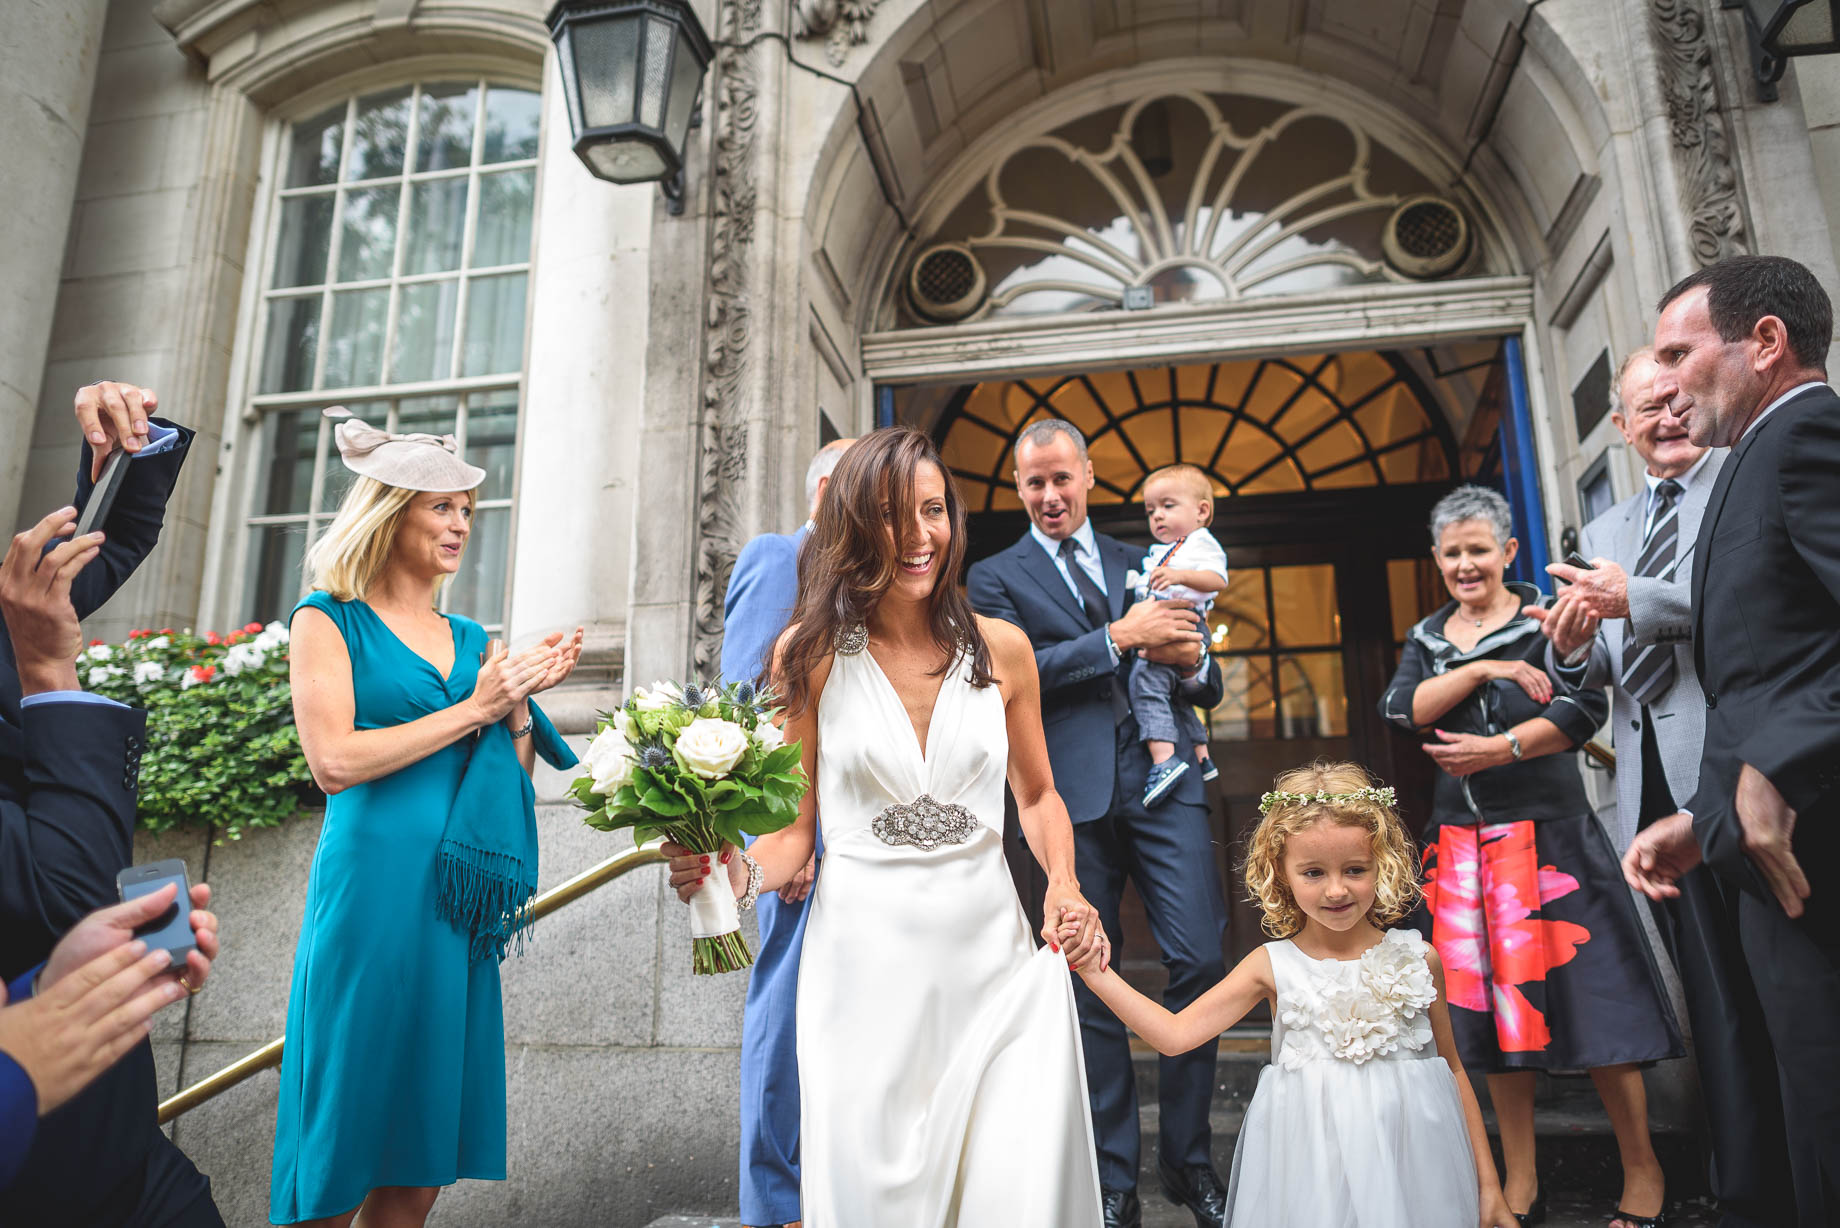 Chelsea and Mayfair wedding photography - Guy Collier - Vicki and Damien (67 of 126)